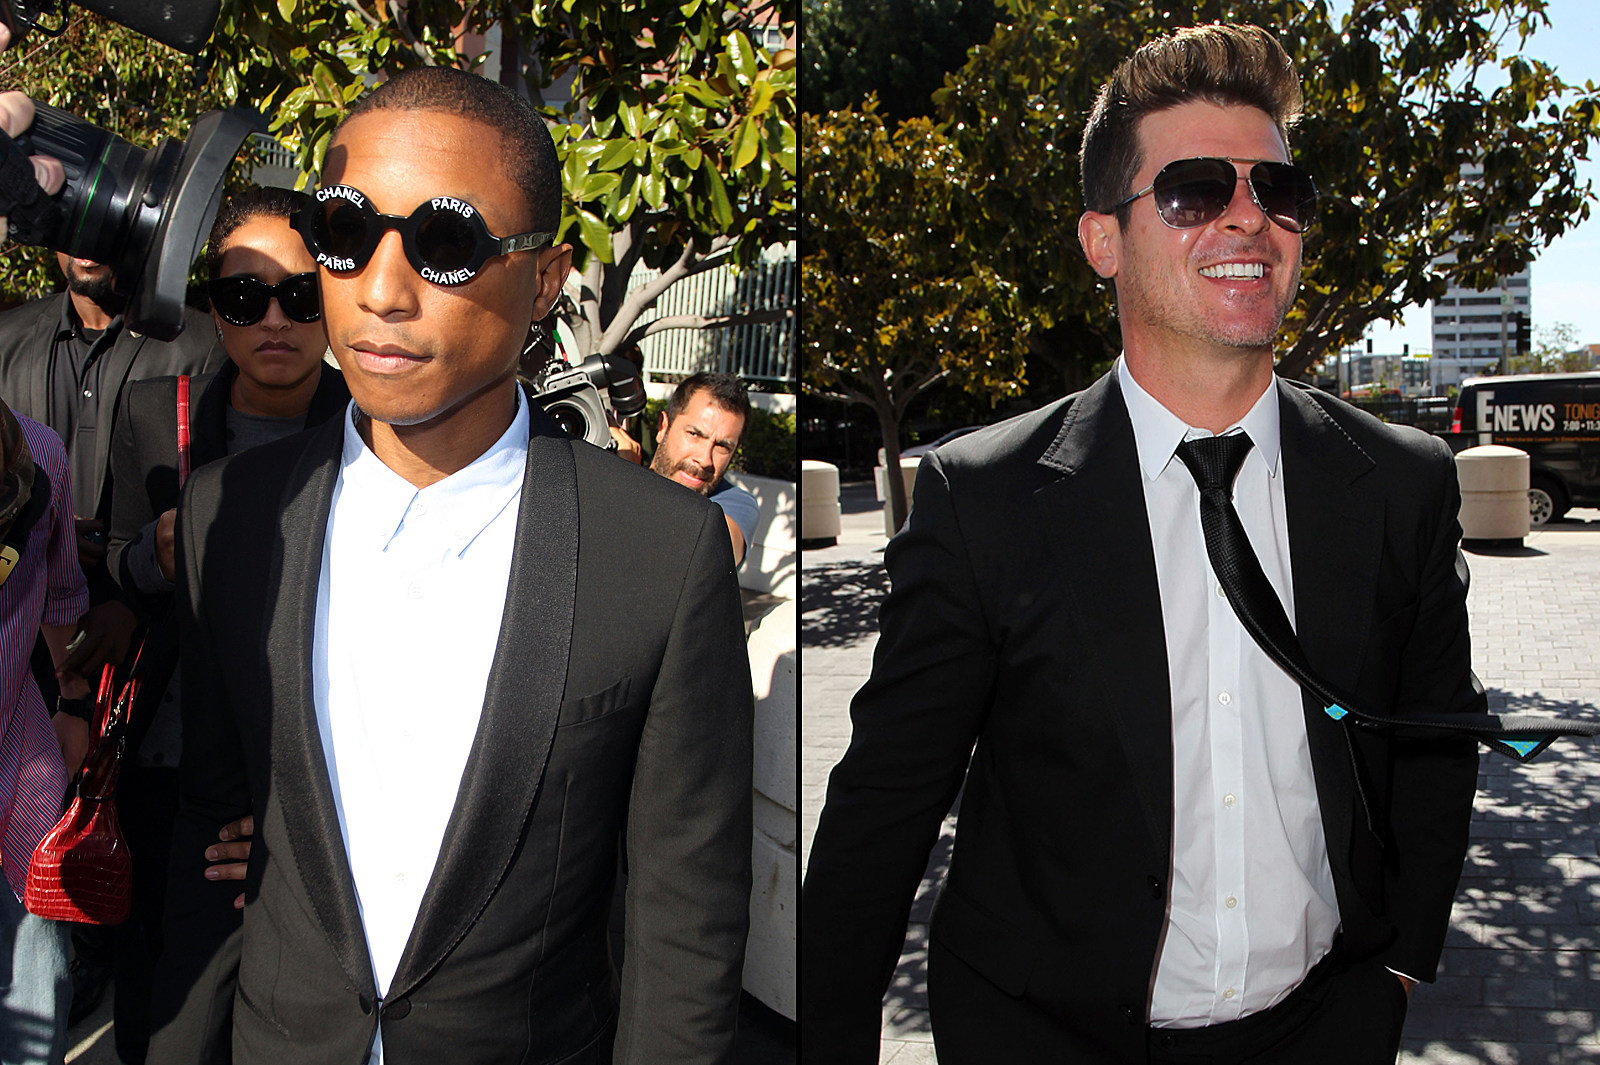 Pharrell Williams, Robin Thicke and T.I. Appeal 'Blurred Lines' Verdict news